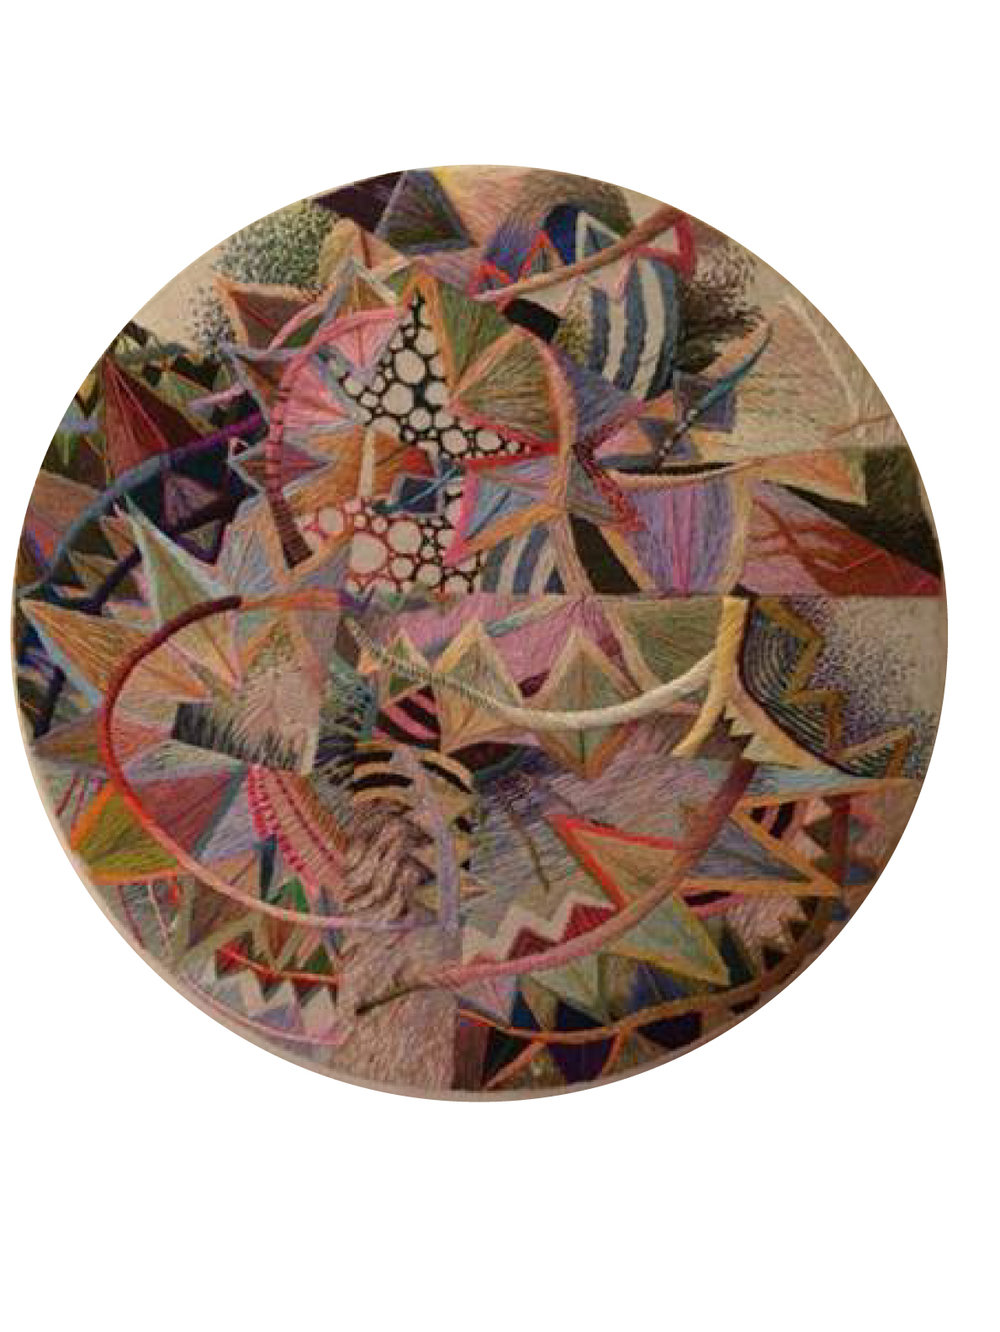 Ruth Miller Seminal Circle, 2011 Original hand embroidered tapestry